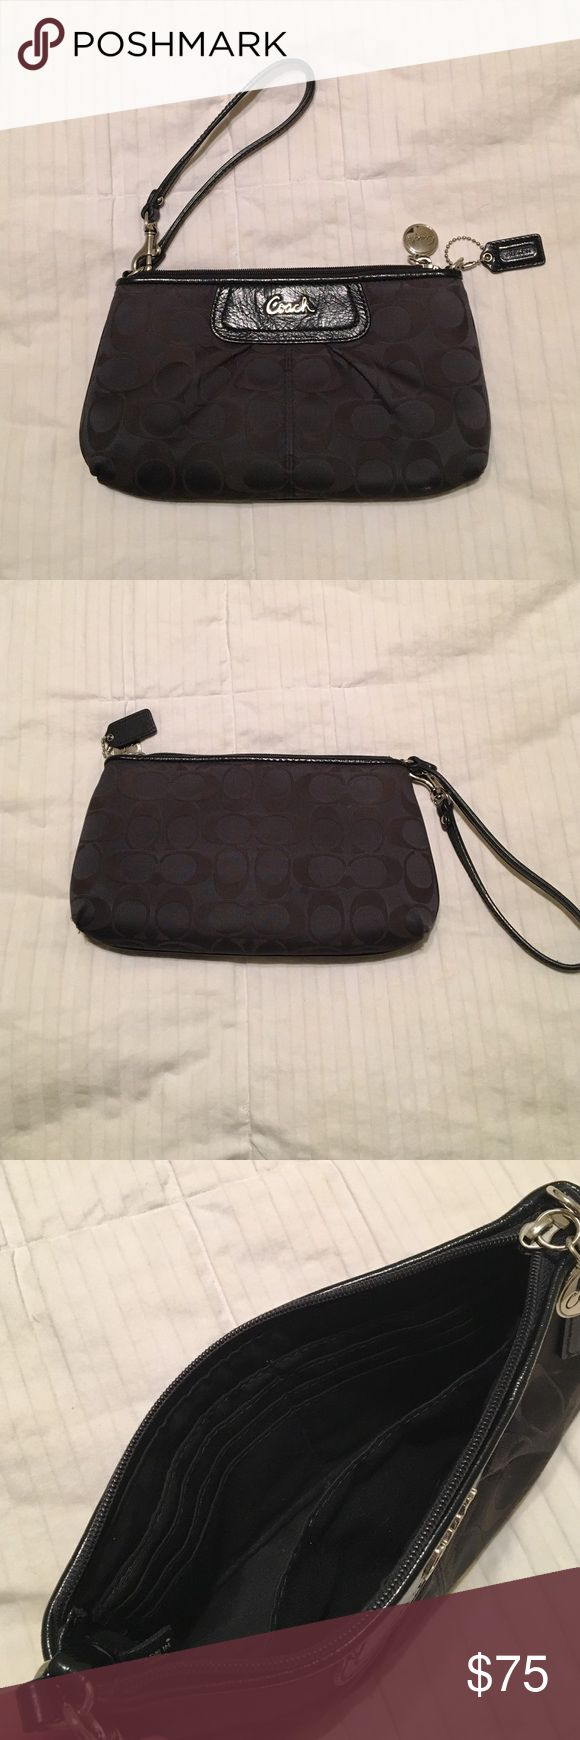 Black Coach Clutch Black Coach clutch in great condition. Only used a few times for nicer events. It has a pocket and credit card organizer inside. Strap is adjustable. Coach Bags Clutches & Wristlets